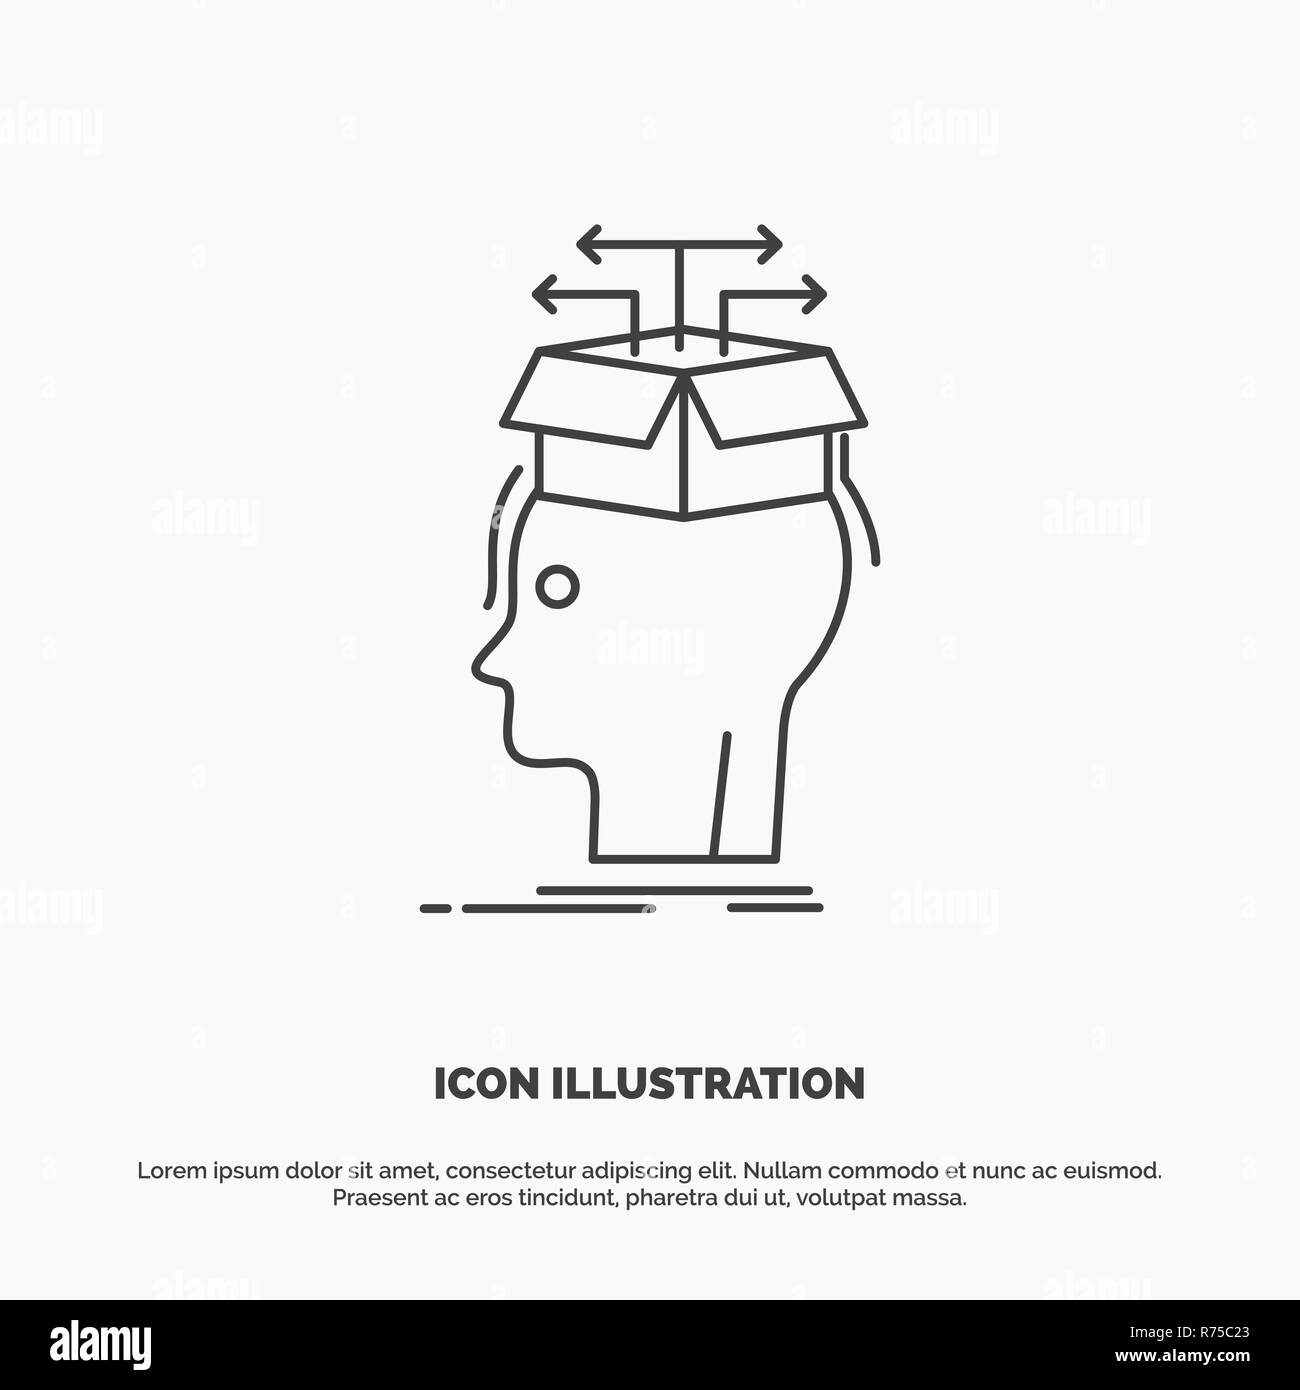 Data Extraction Head Knowledge Sharing Icon Line Vector Gray Symbol For Ui And Ux Website Or Mobile Application Stock Vector Image Art Alamy